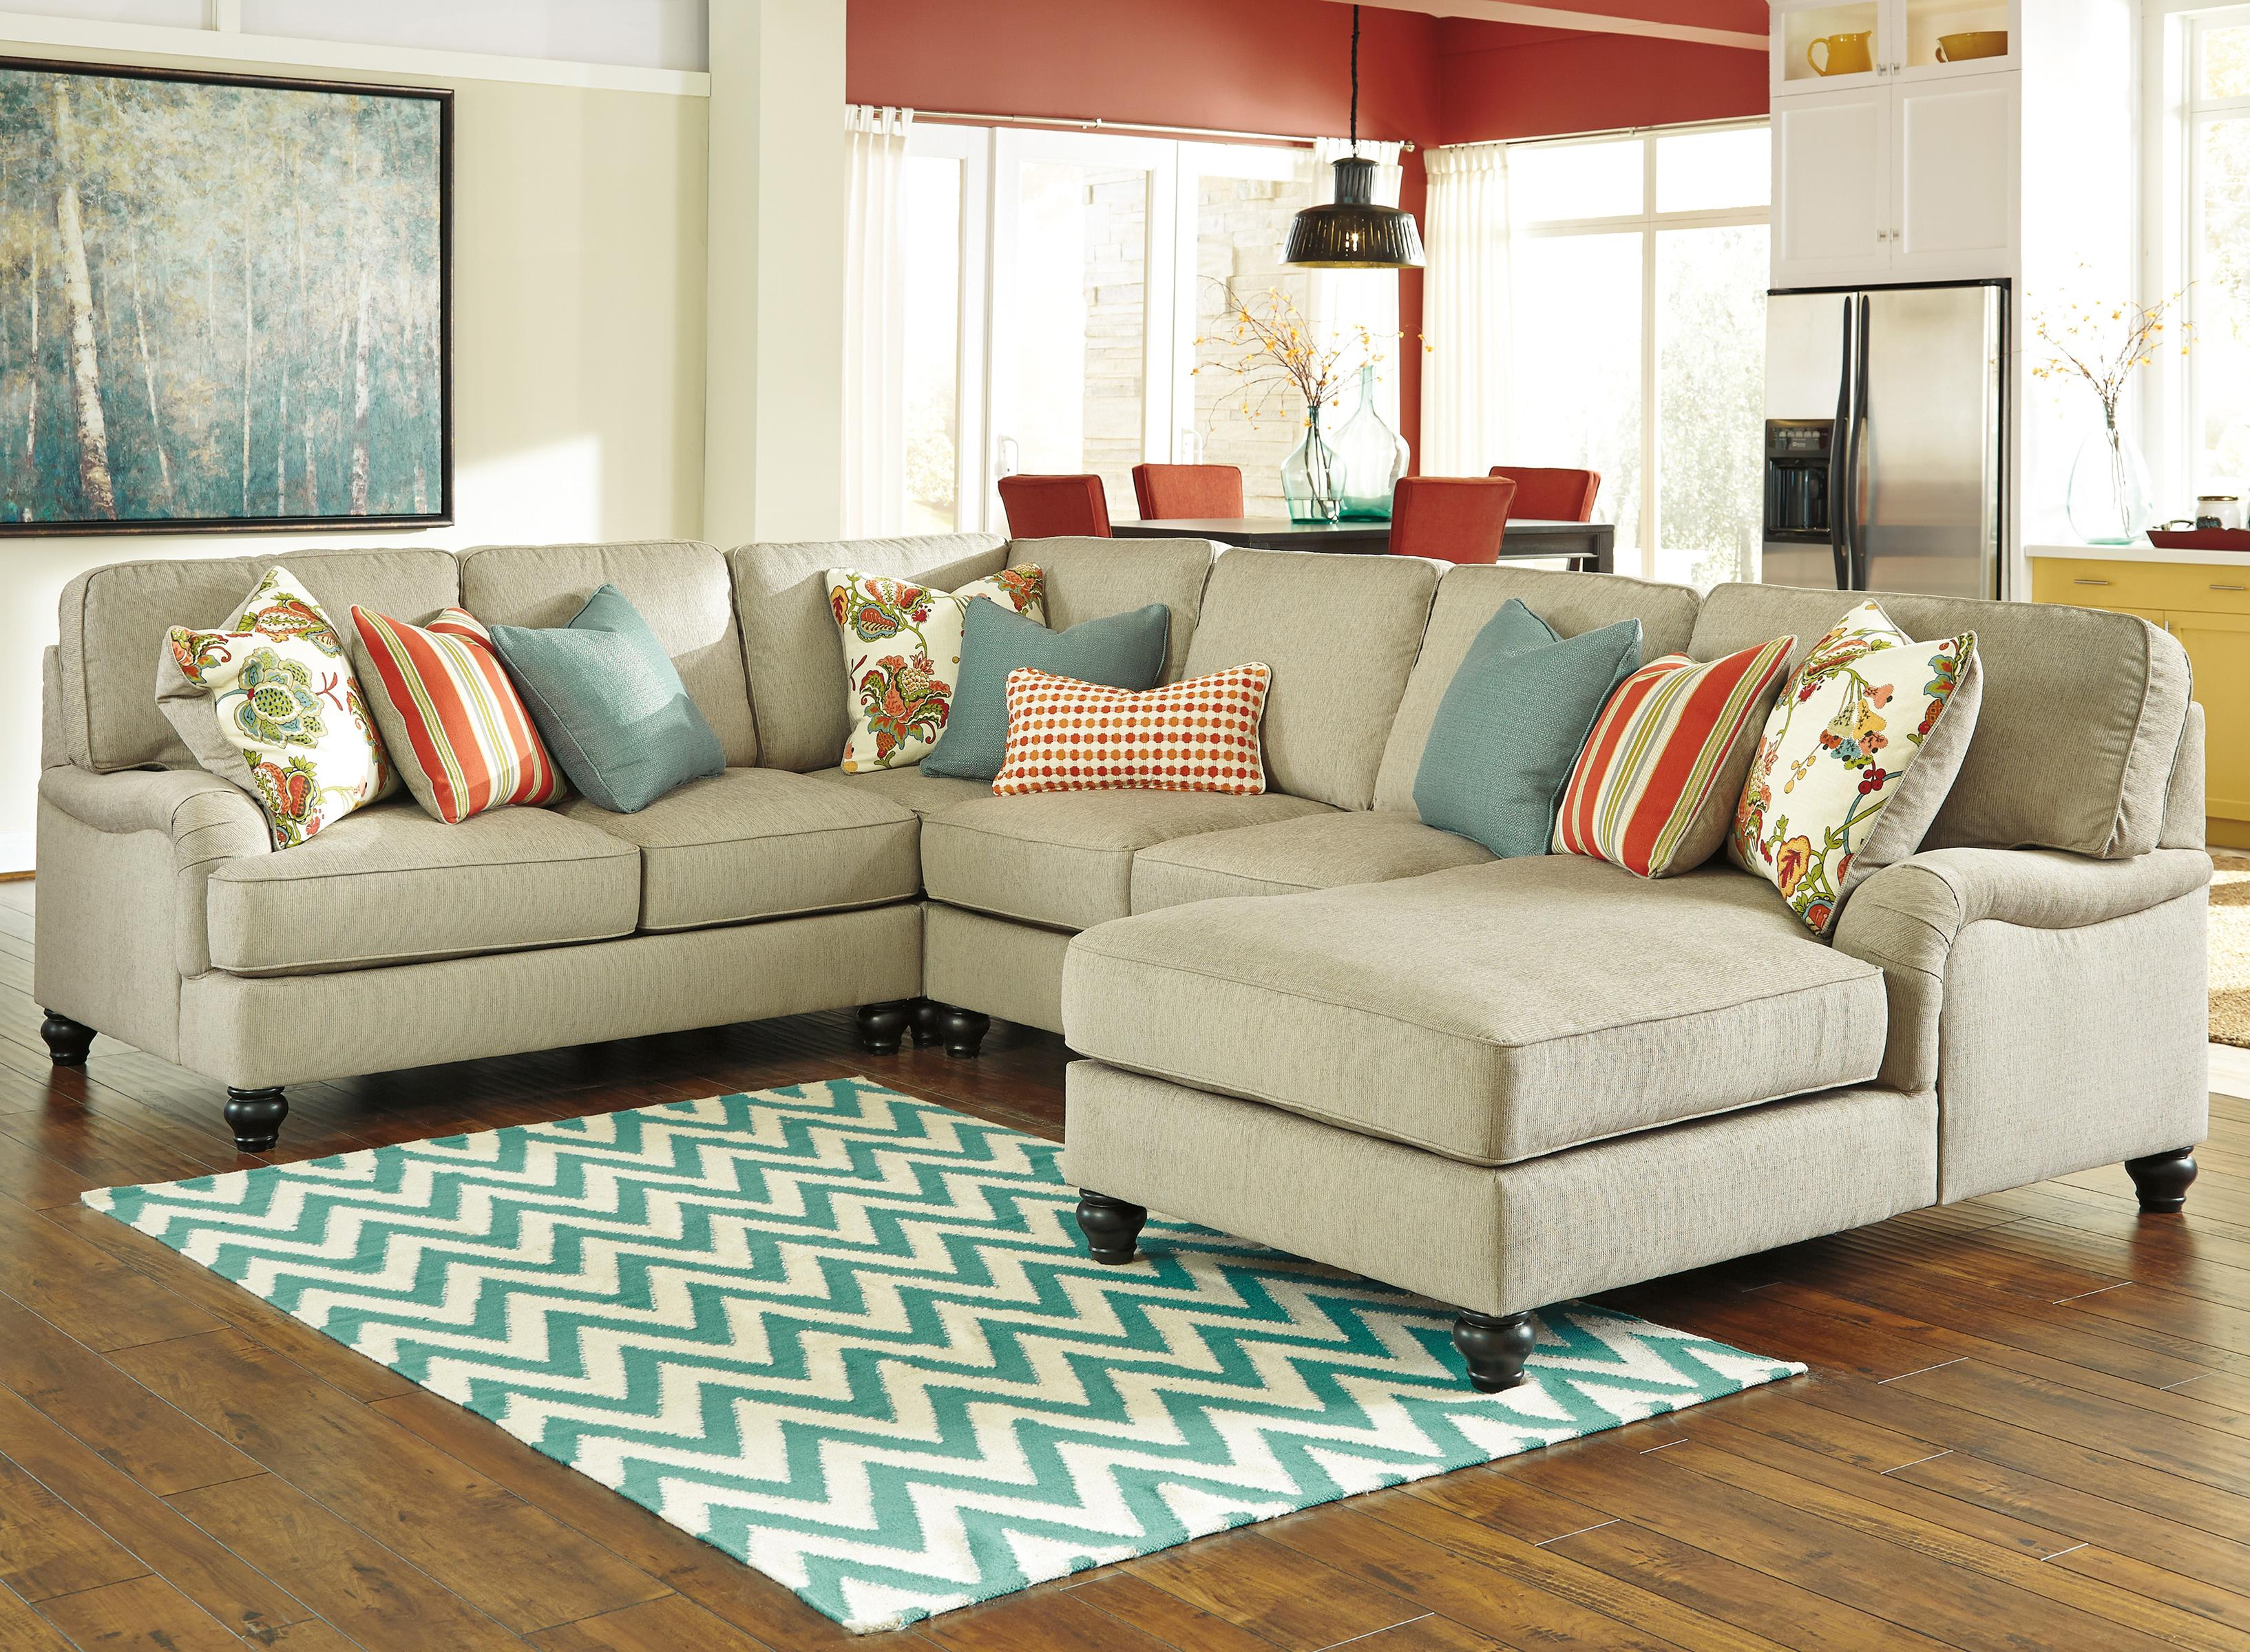 Benchcraft Kerridon 4-Piece Sectional with Right Chaise - Item Number: 2630055+77+34+17